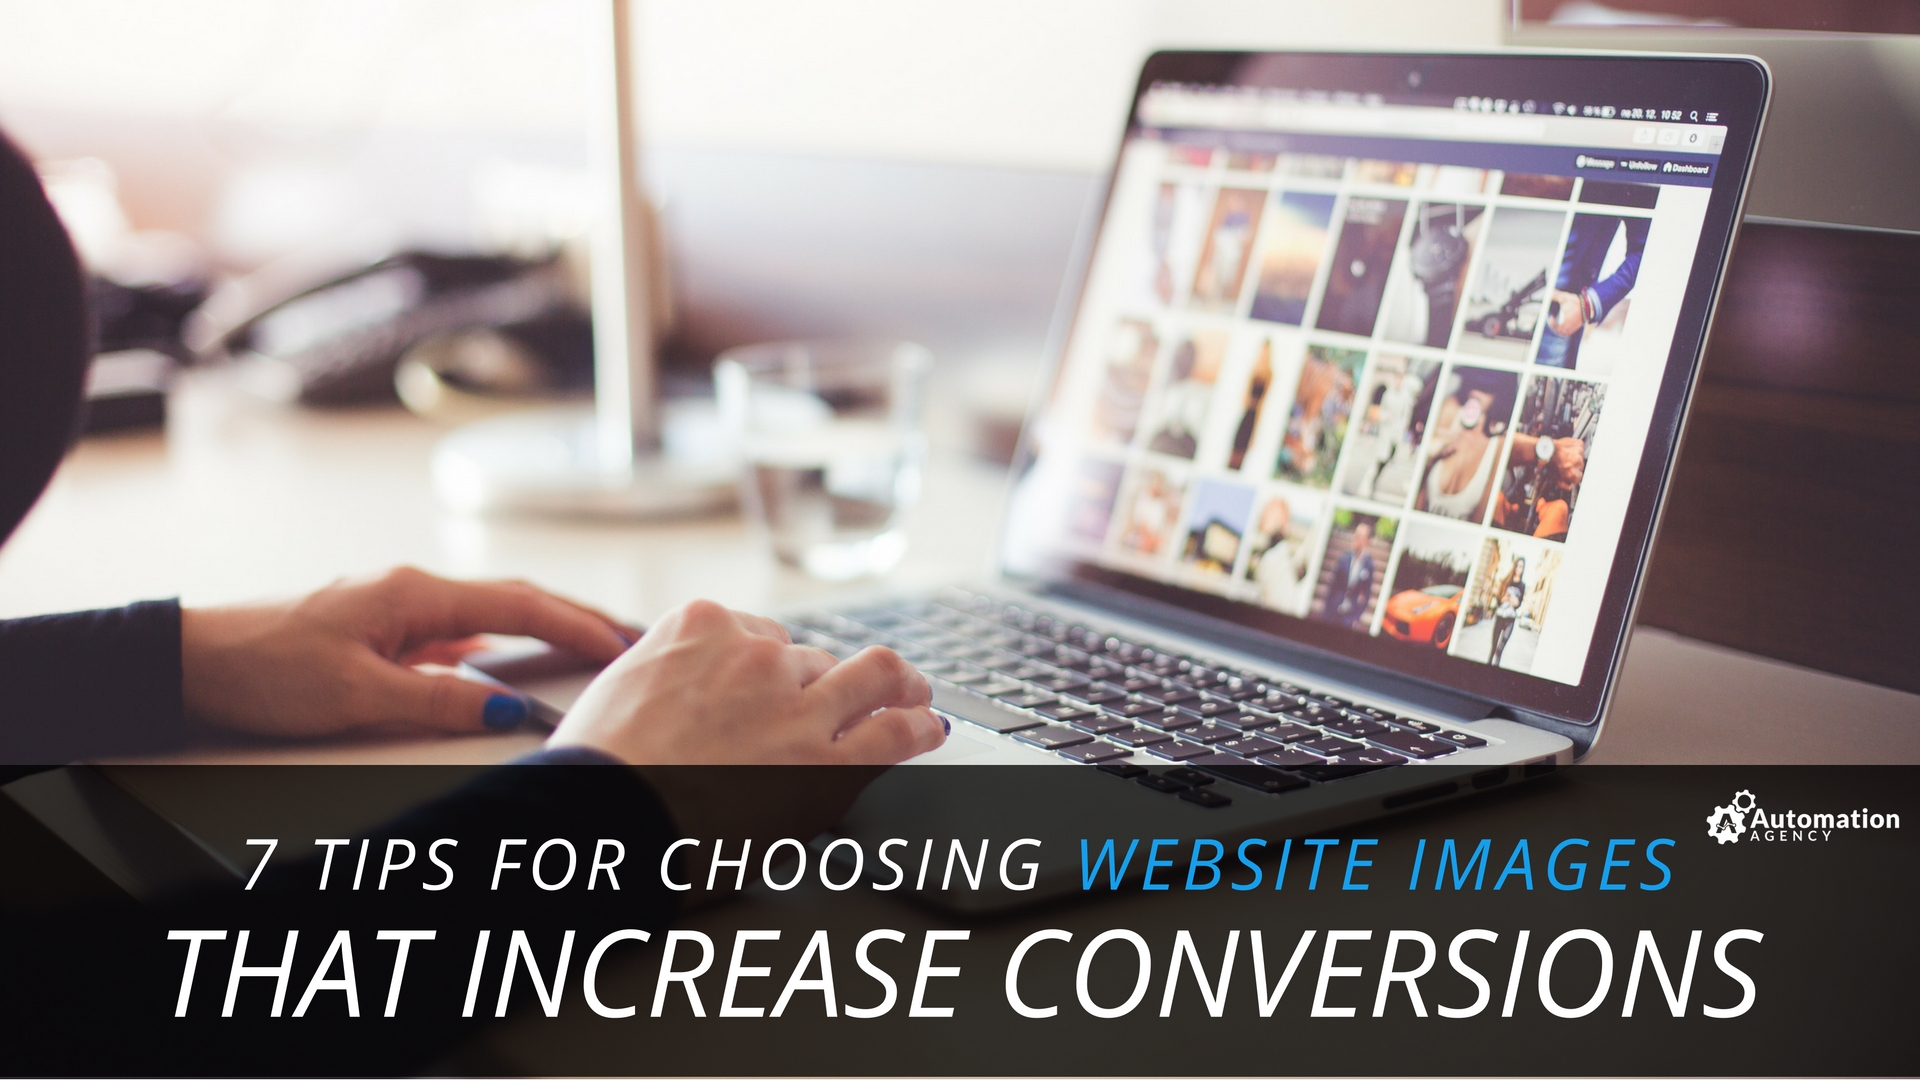 7_tips_for_choosing_website_images_that_increase_conversions